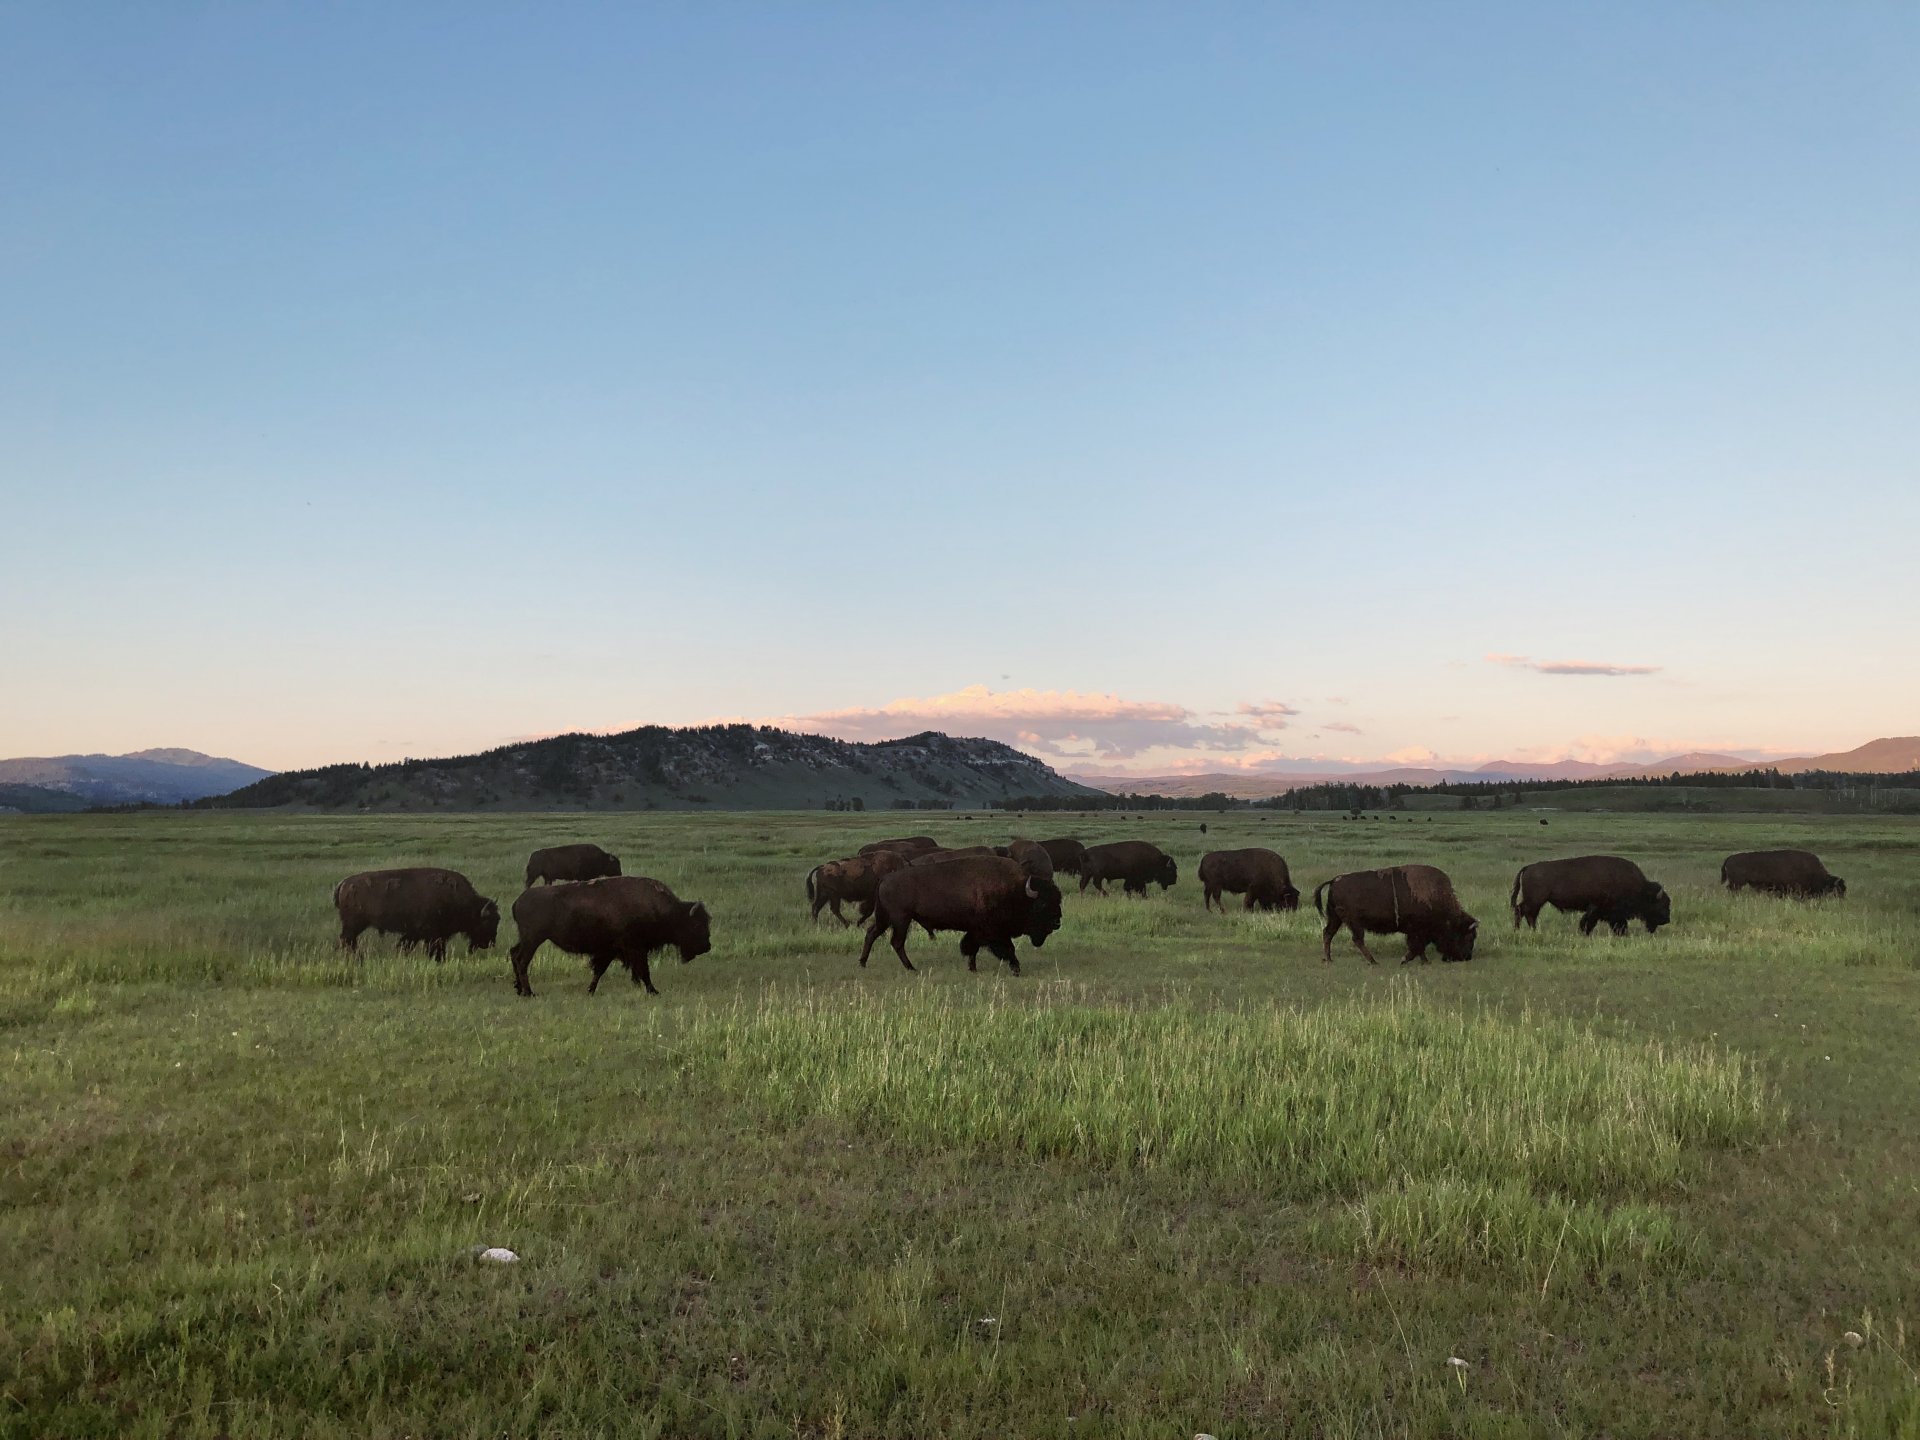 11 bison in a grassy field during sunset